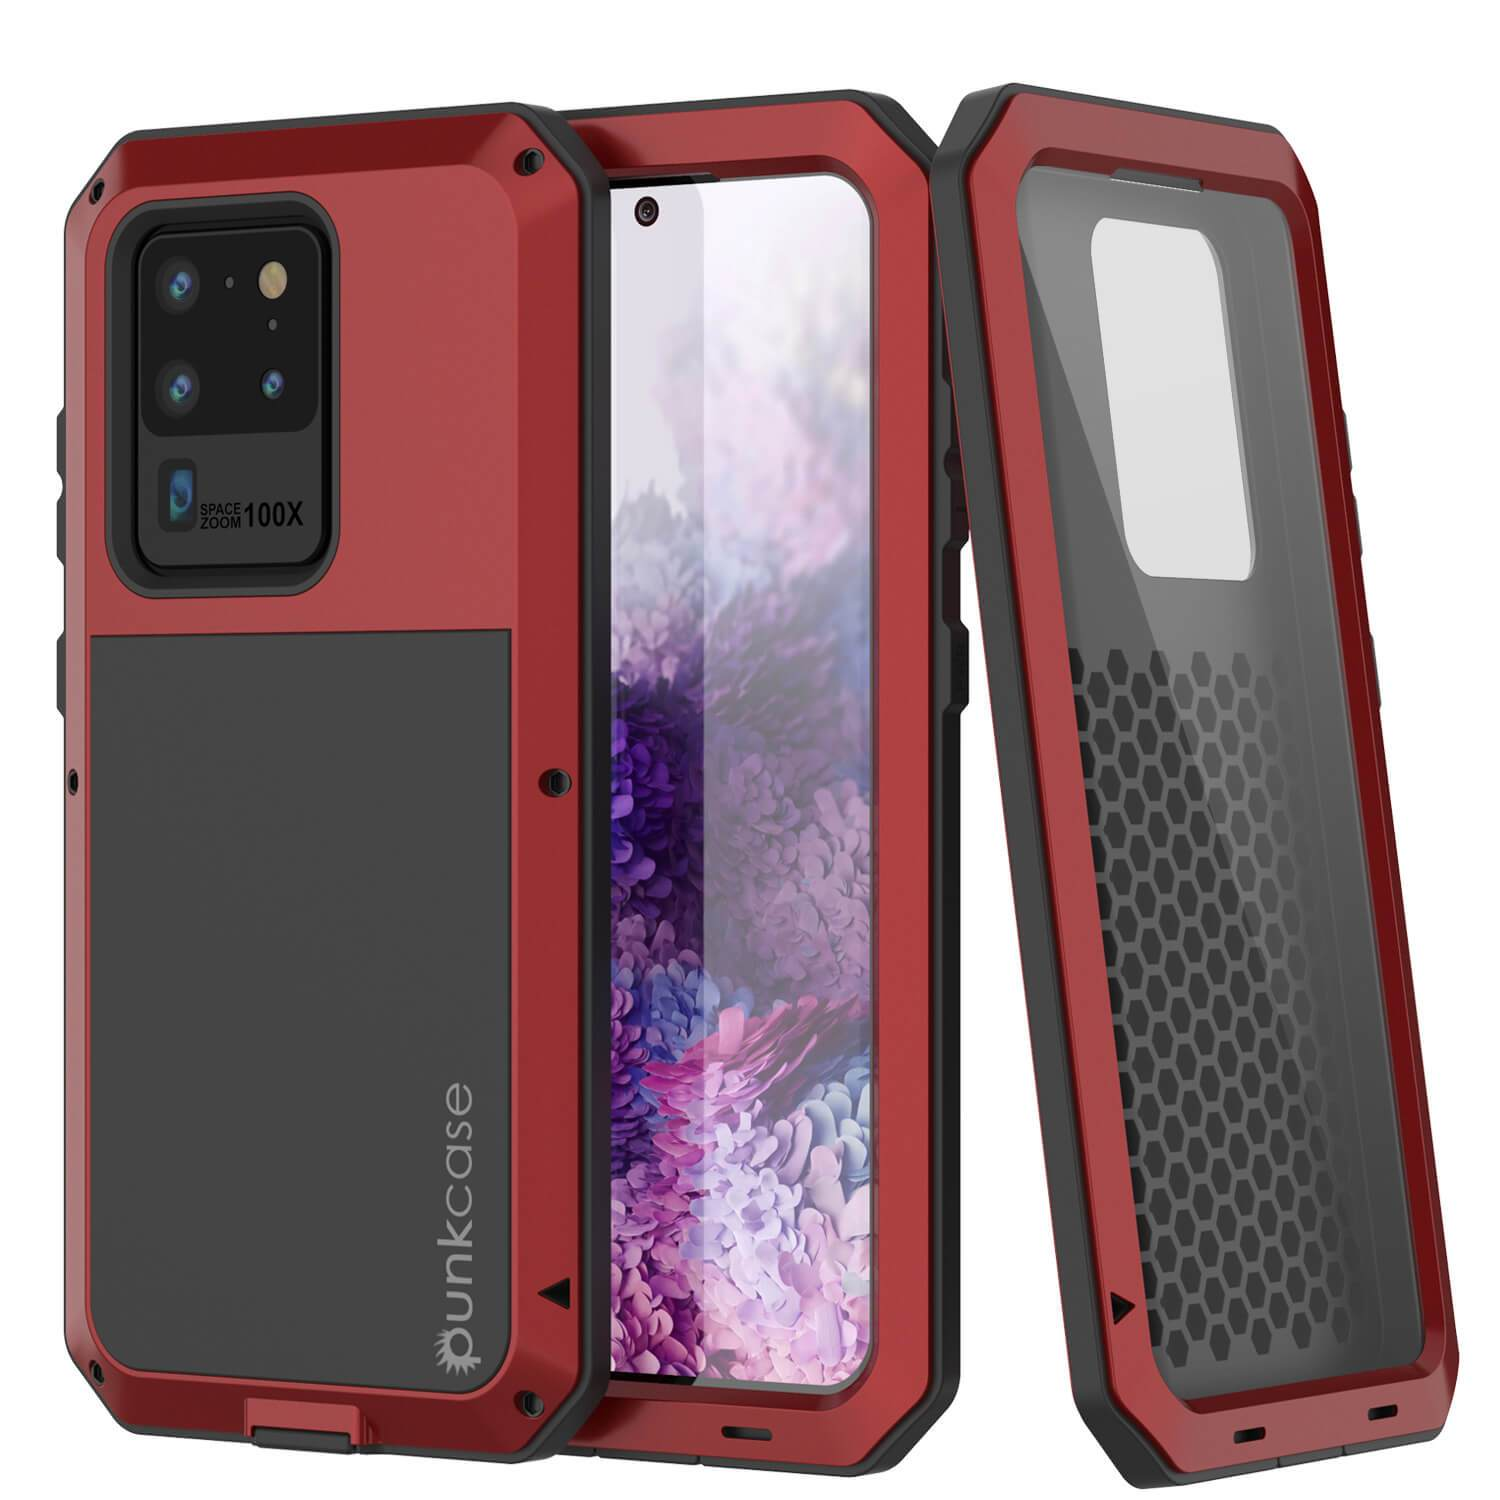 Galaxy S20 Ultra Metal Case, Heavy Duty Military Grade Rugged Armor Cover [Red]